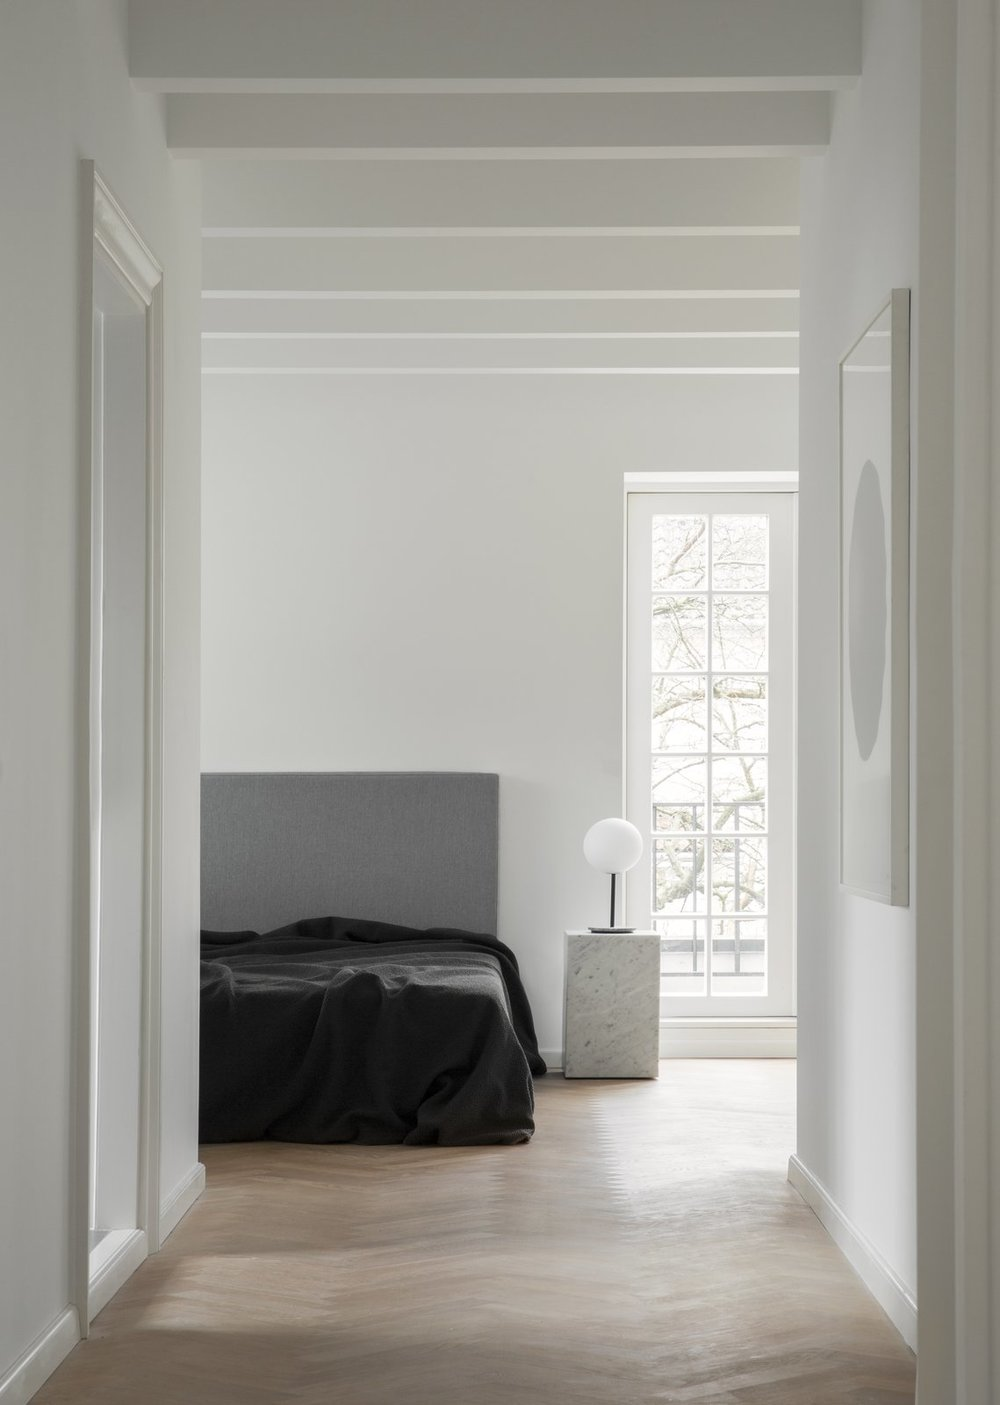 EGGAll+white+satin+and+eggshell+finish+painted+hallway+walls.jpg